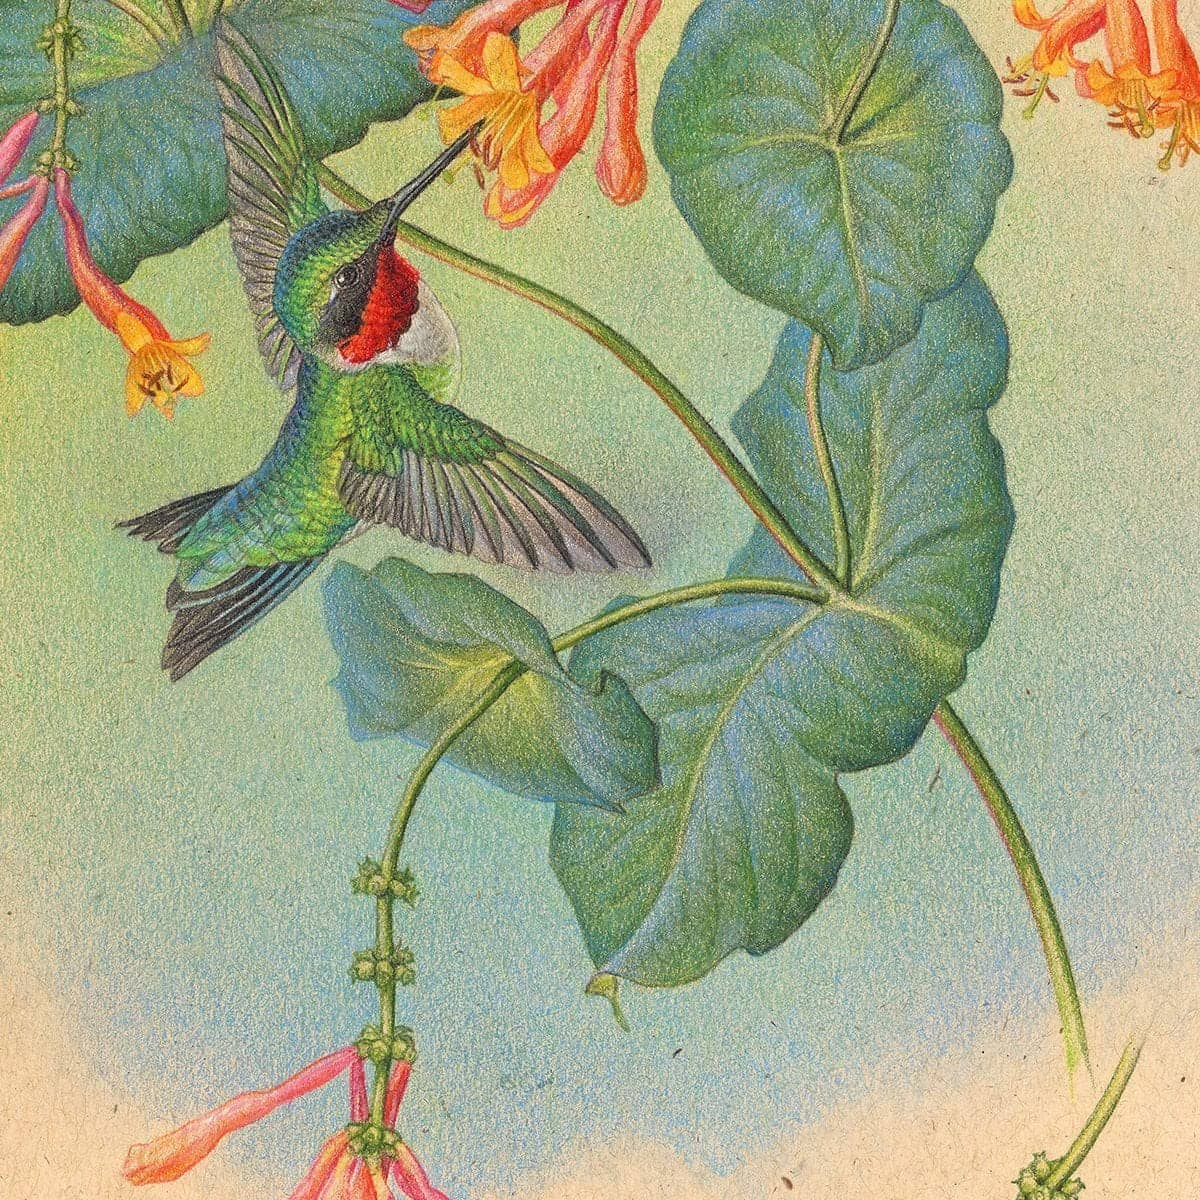 Ruby-throated Hummingbirds with Trumpet Flower - Art Print by Glen Loates from the Glen Loates Store